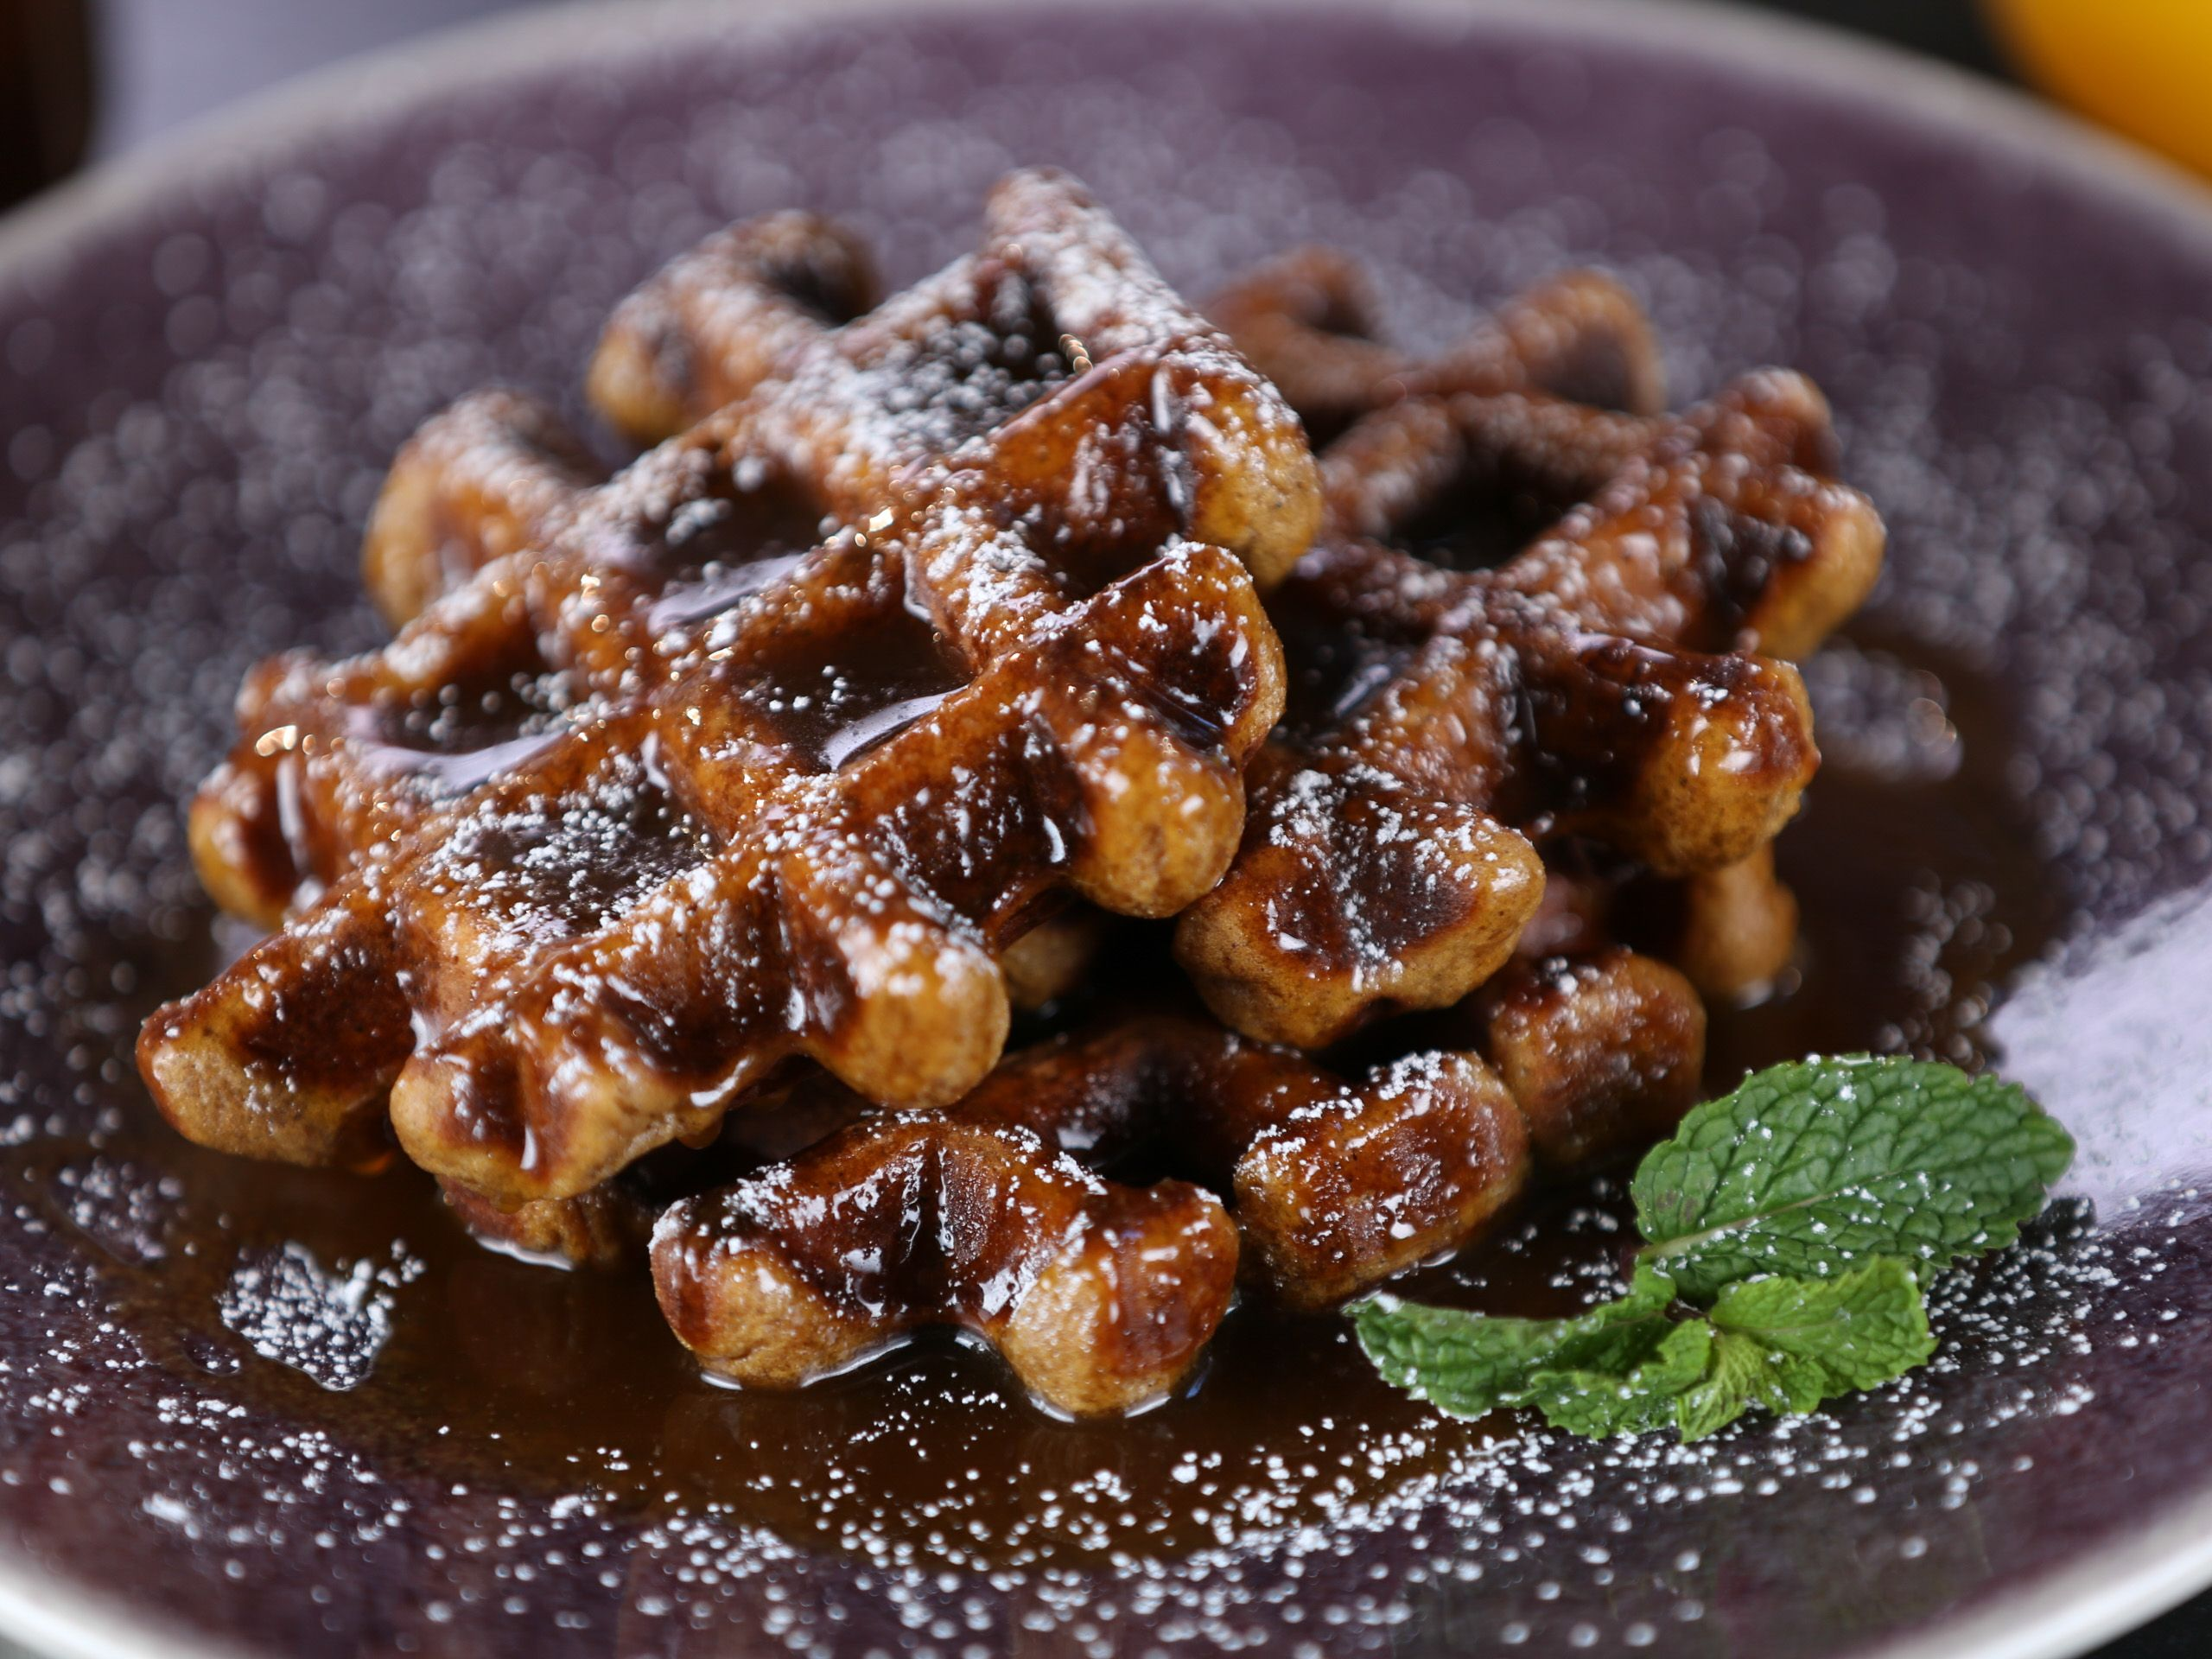 Gingerbread Pumpkin Waffles With Buttermilk Rum Caramel Syrup Recipe Pumpkin Waffles Food Network Recipes Waffles